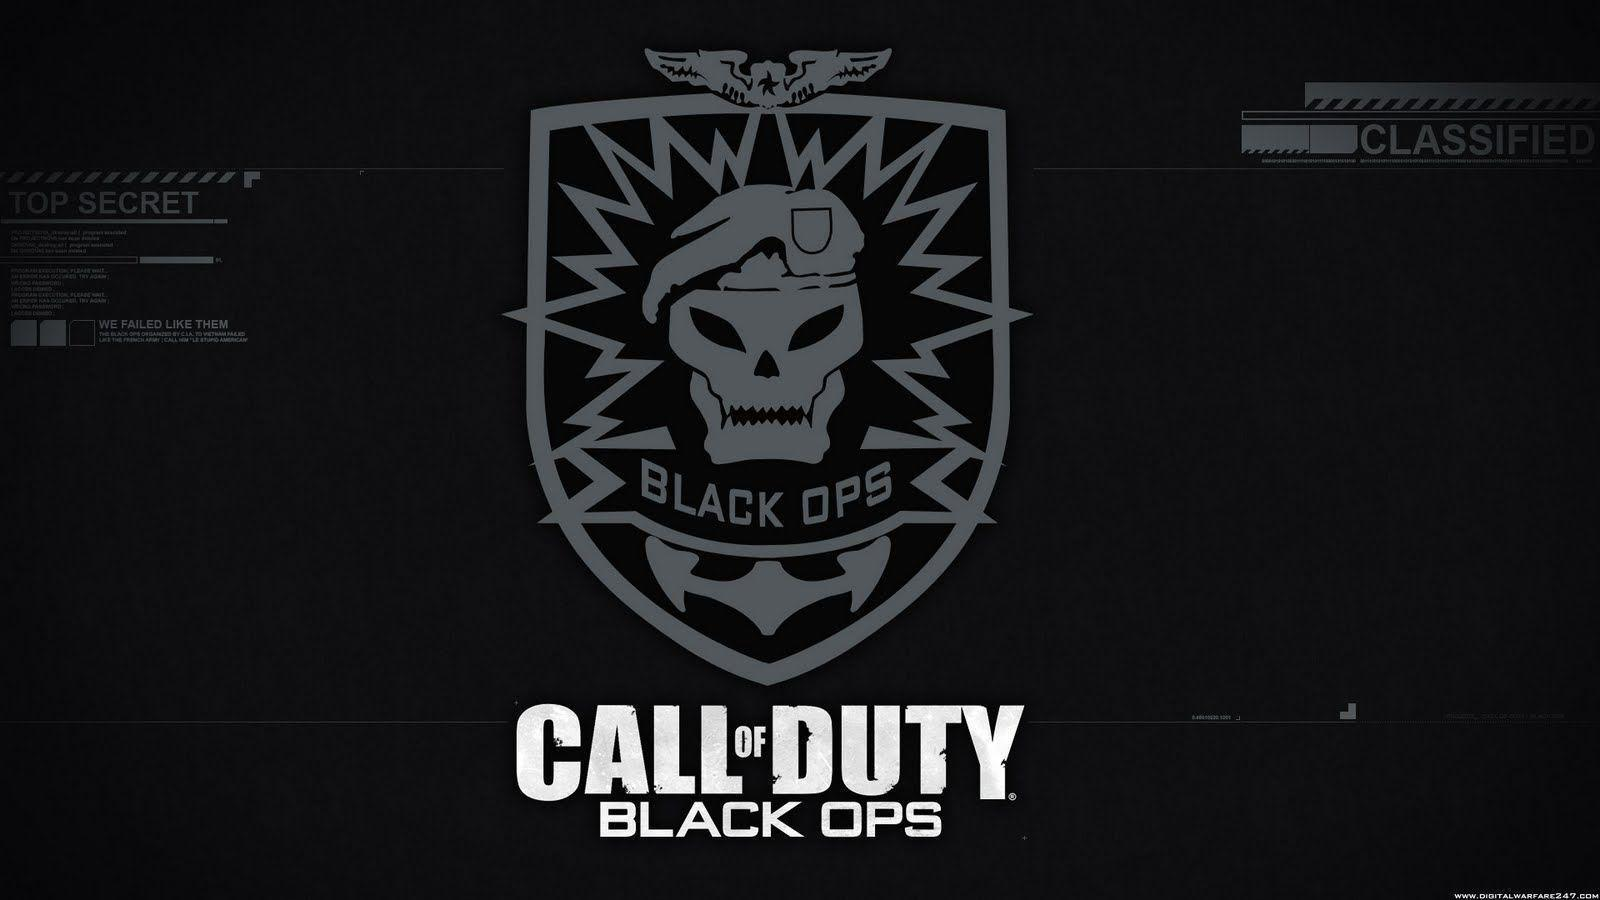 Black Ops Wallpapers Ps3